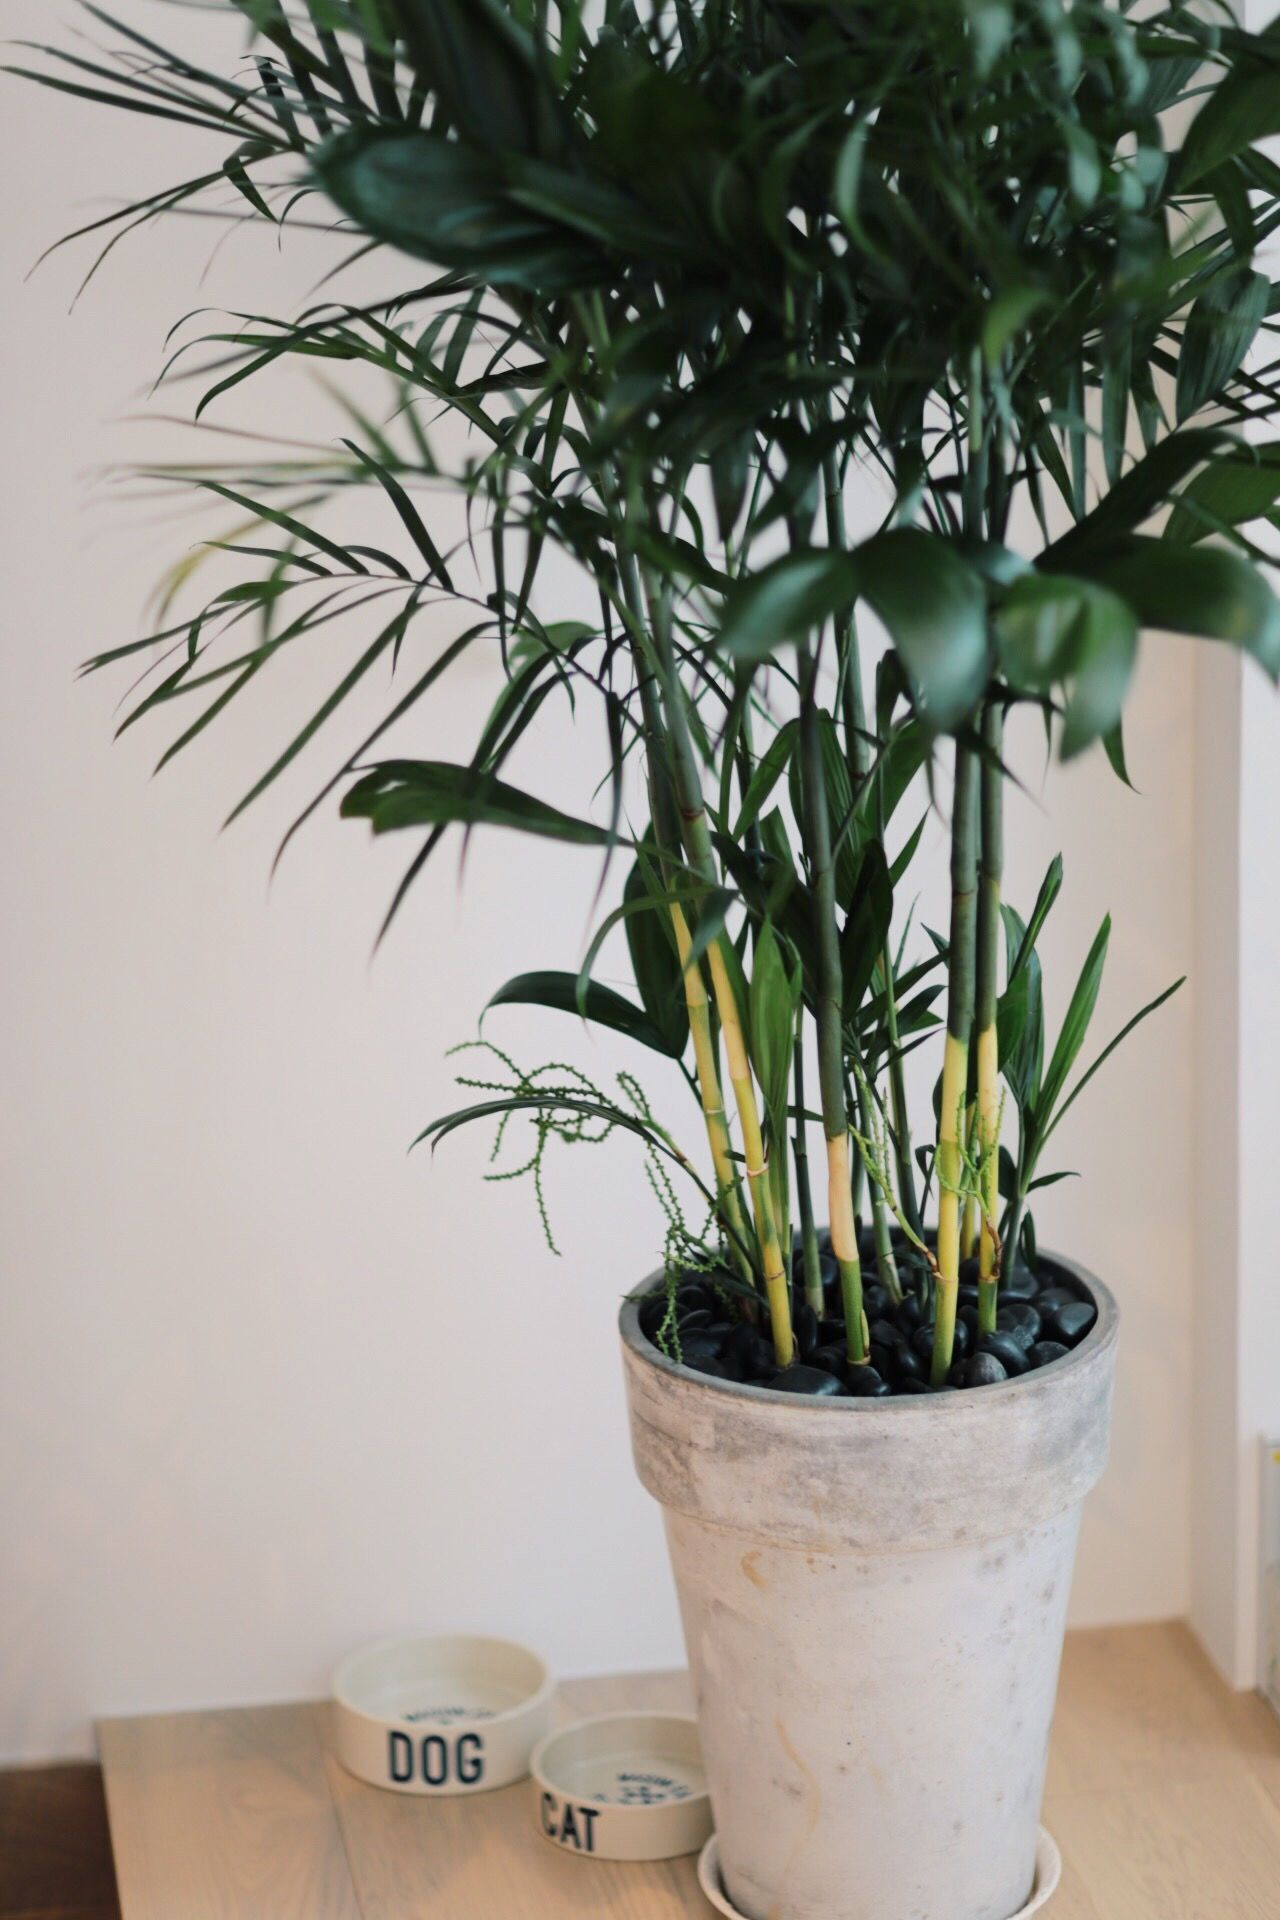 Potted Plant Plant Indoors  Growth Vase Table Home Interior No People Flower Nature Day Close-up Architecture Freshness